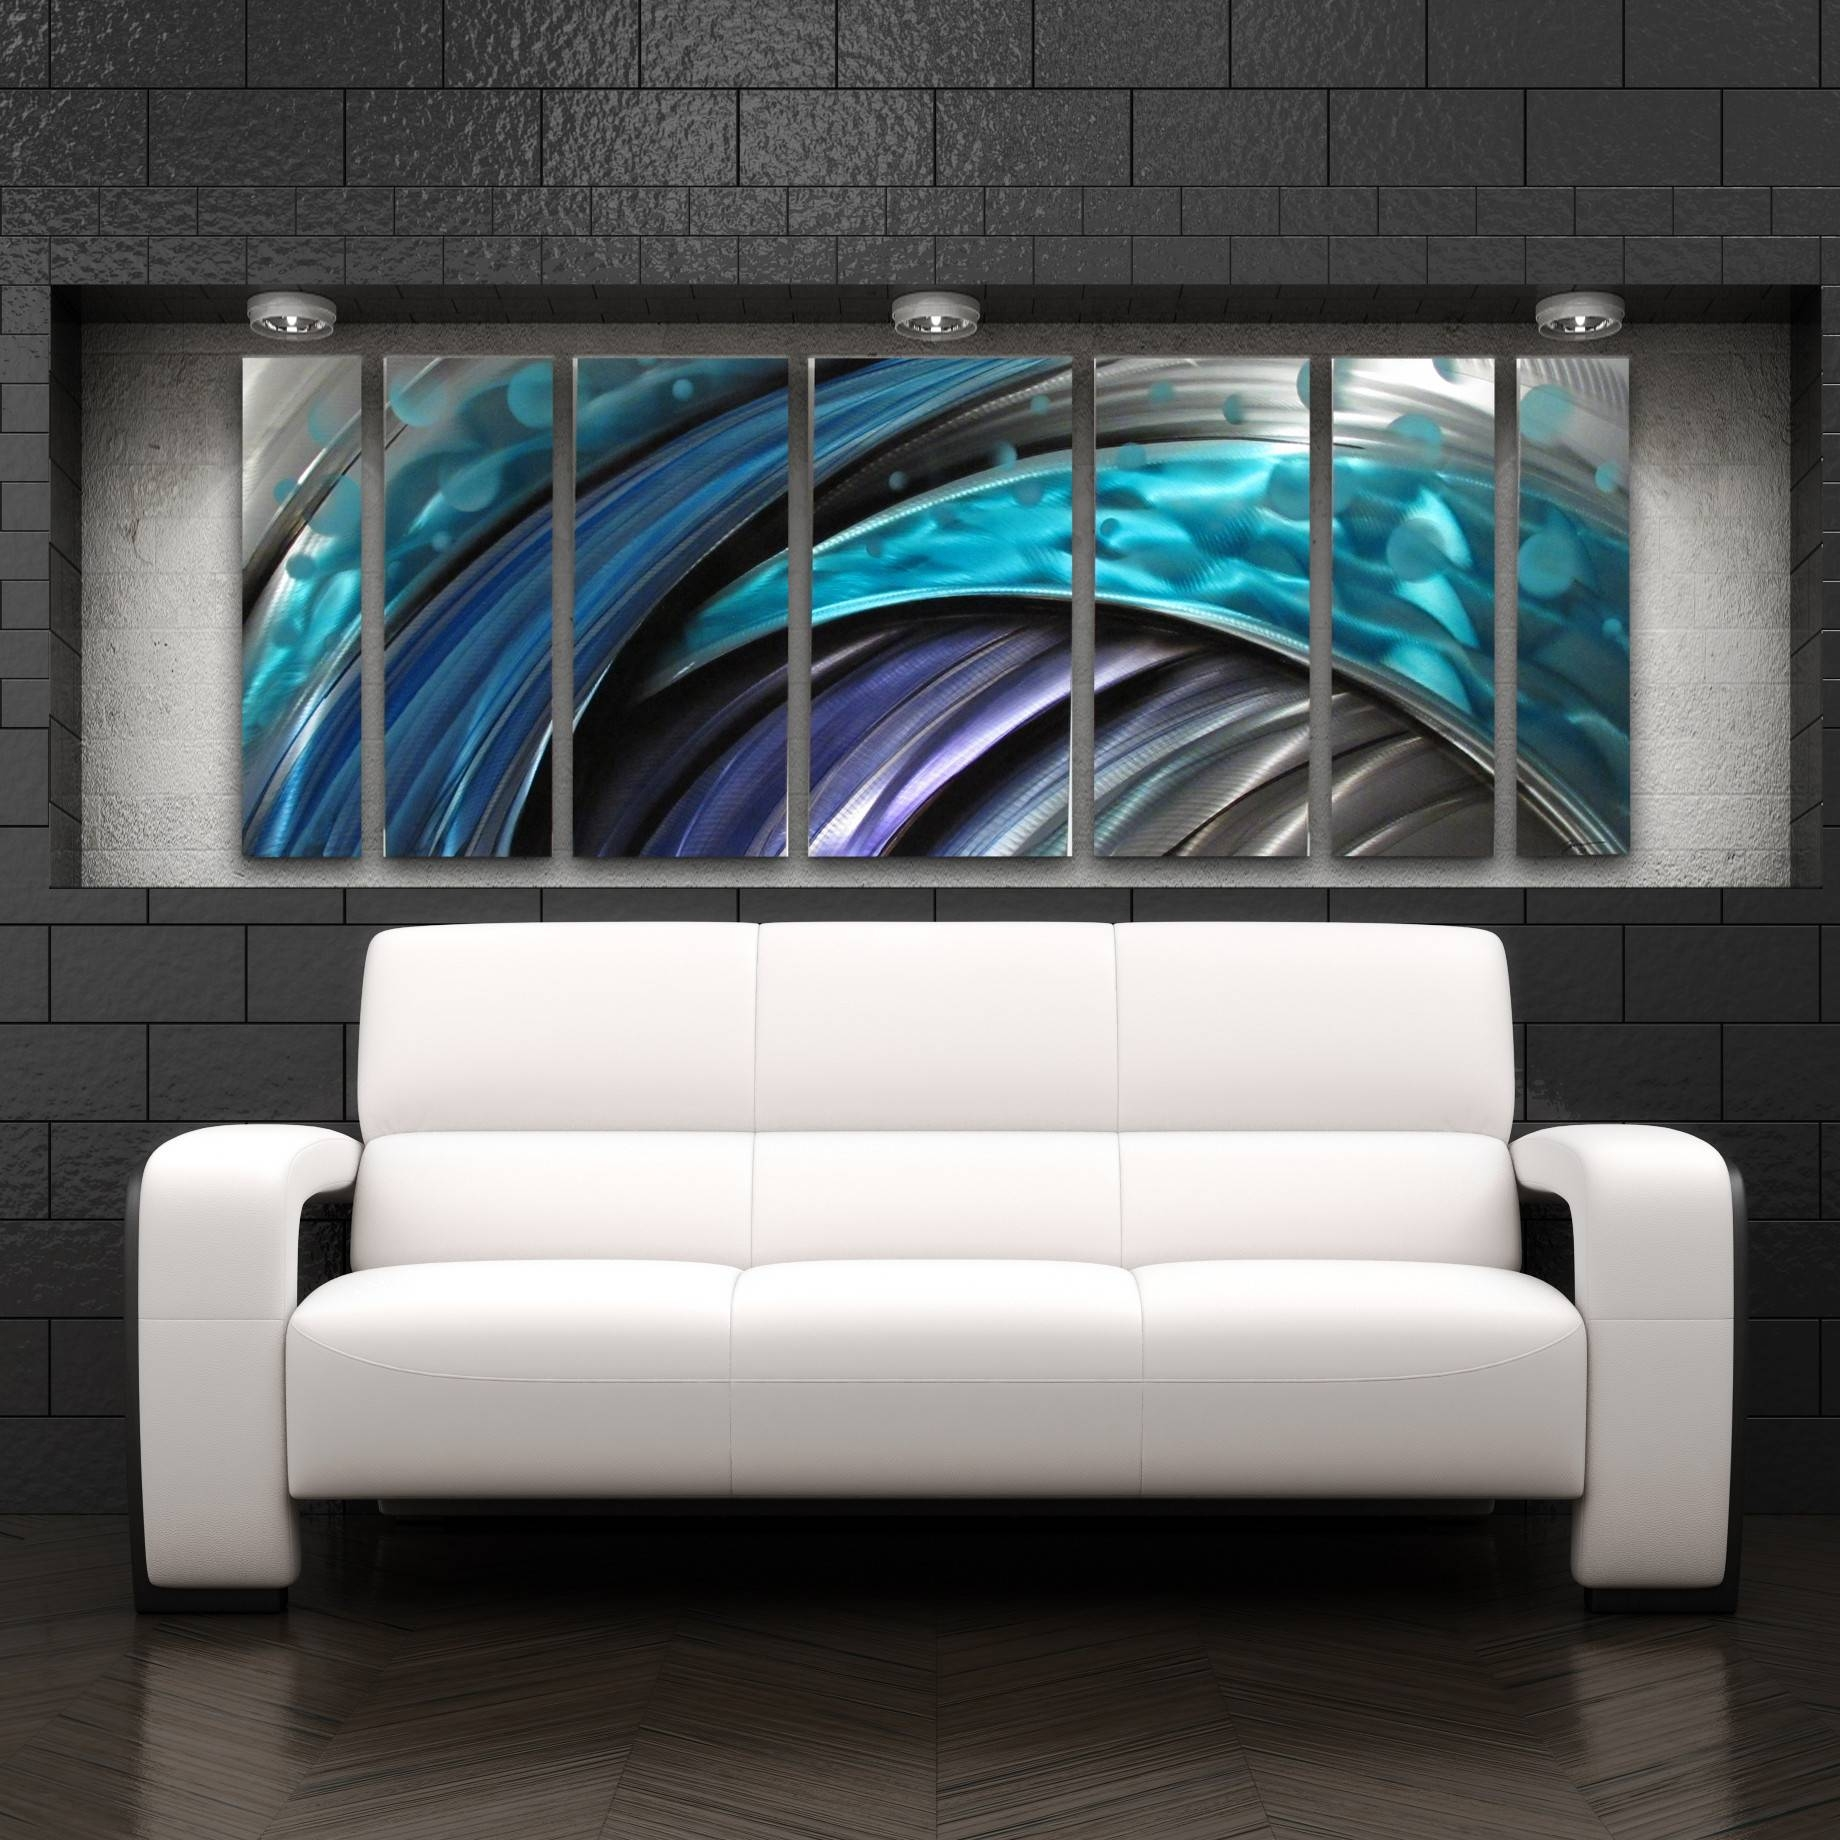 Facts That Nobody Told You About Contemporary Metal Wall Art With Current Contemporary Metal Wall Art Decor (View 5 of 20)